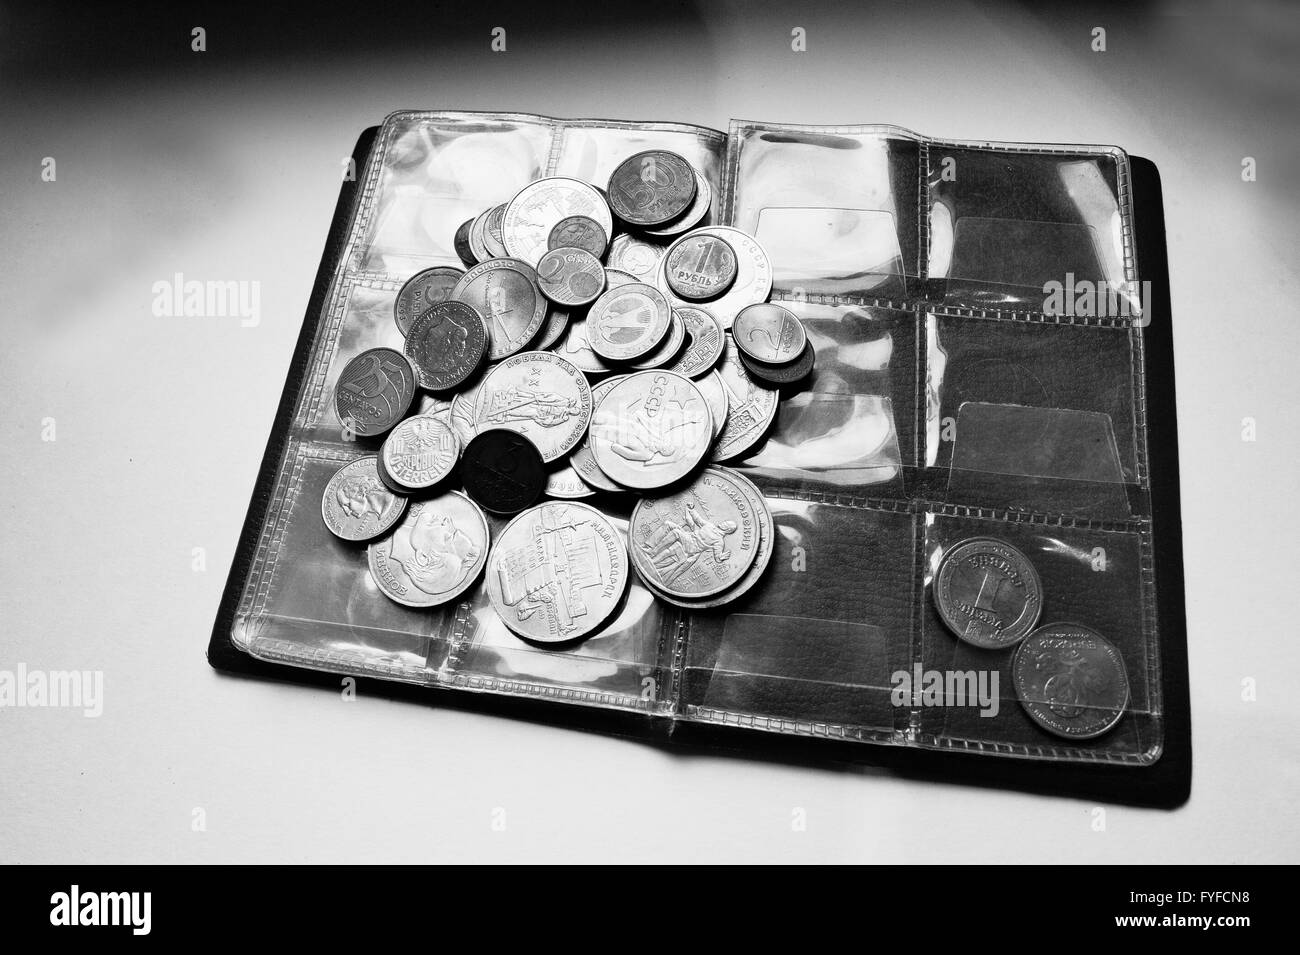 Different countries coins at umismatics album. Black and white photo - Stock Image